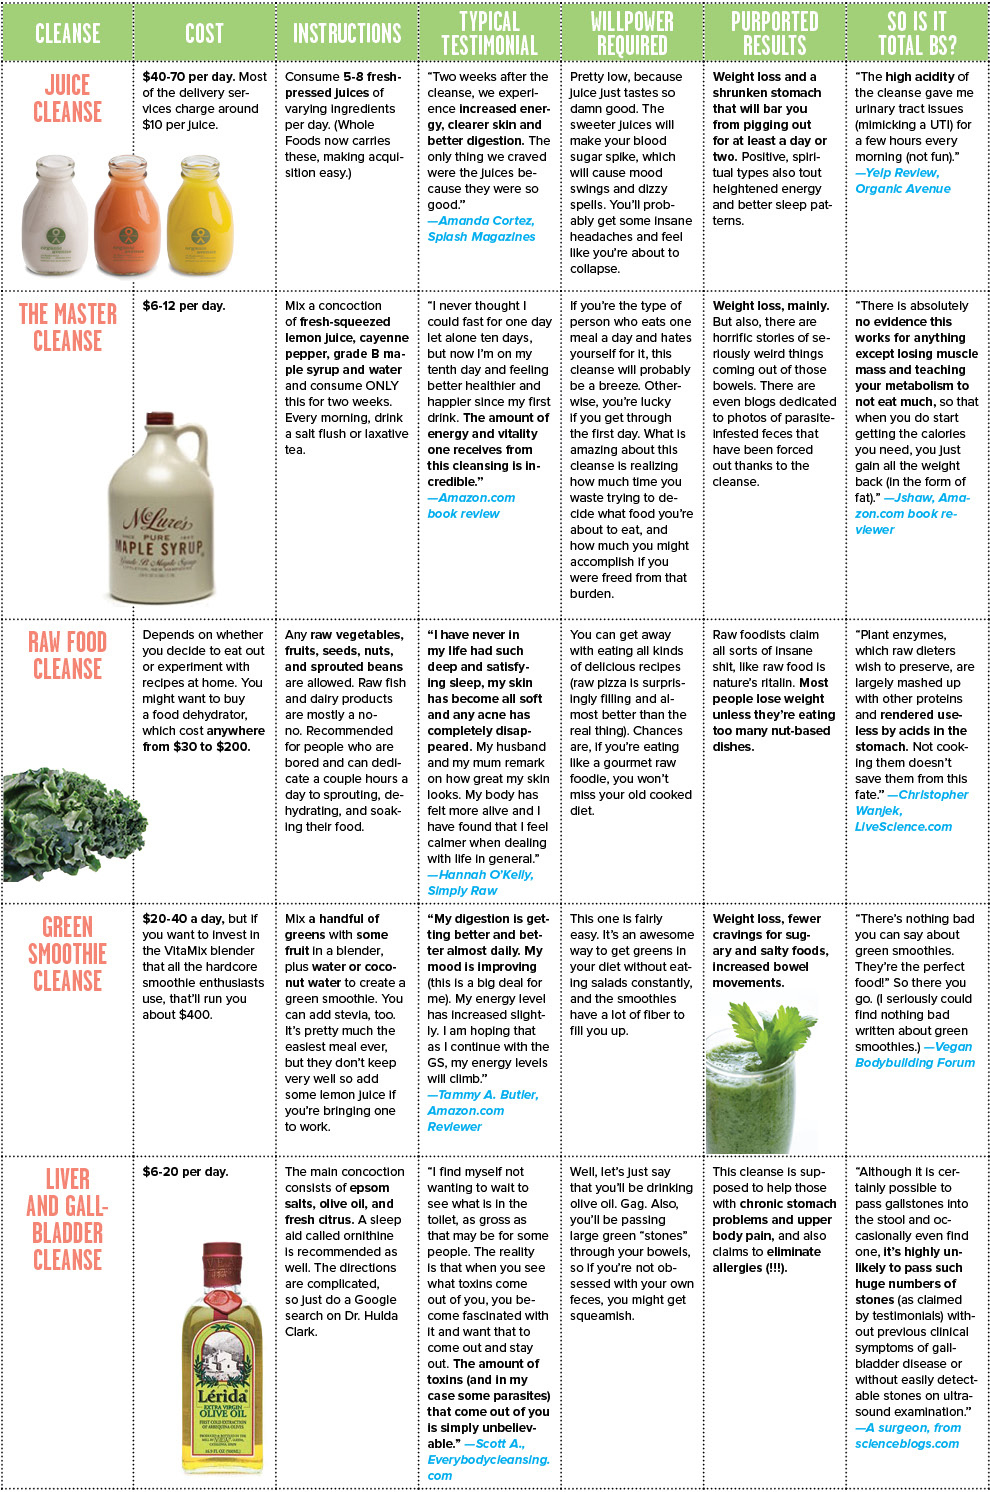 http://www.buzzfeed.com/peggy/charted-spring-cleansing#.nl7DrKZgR